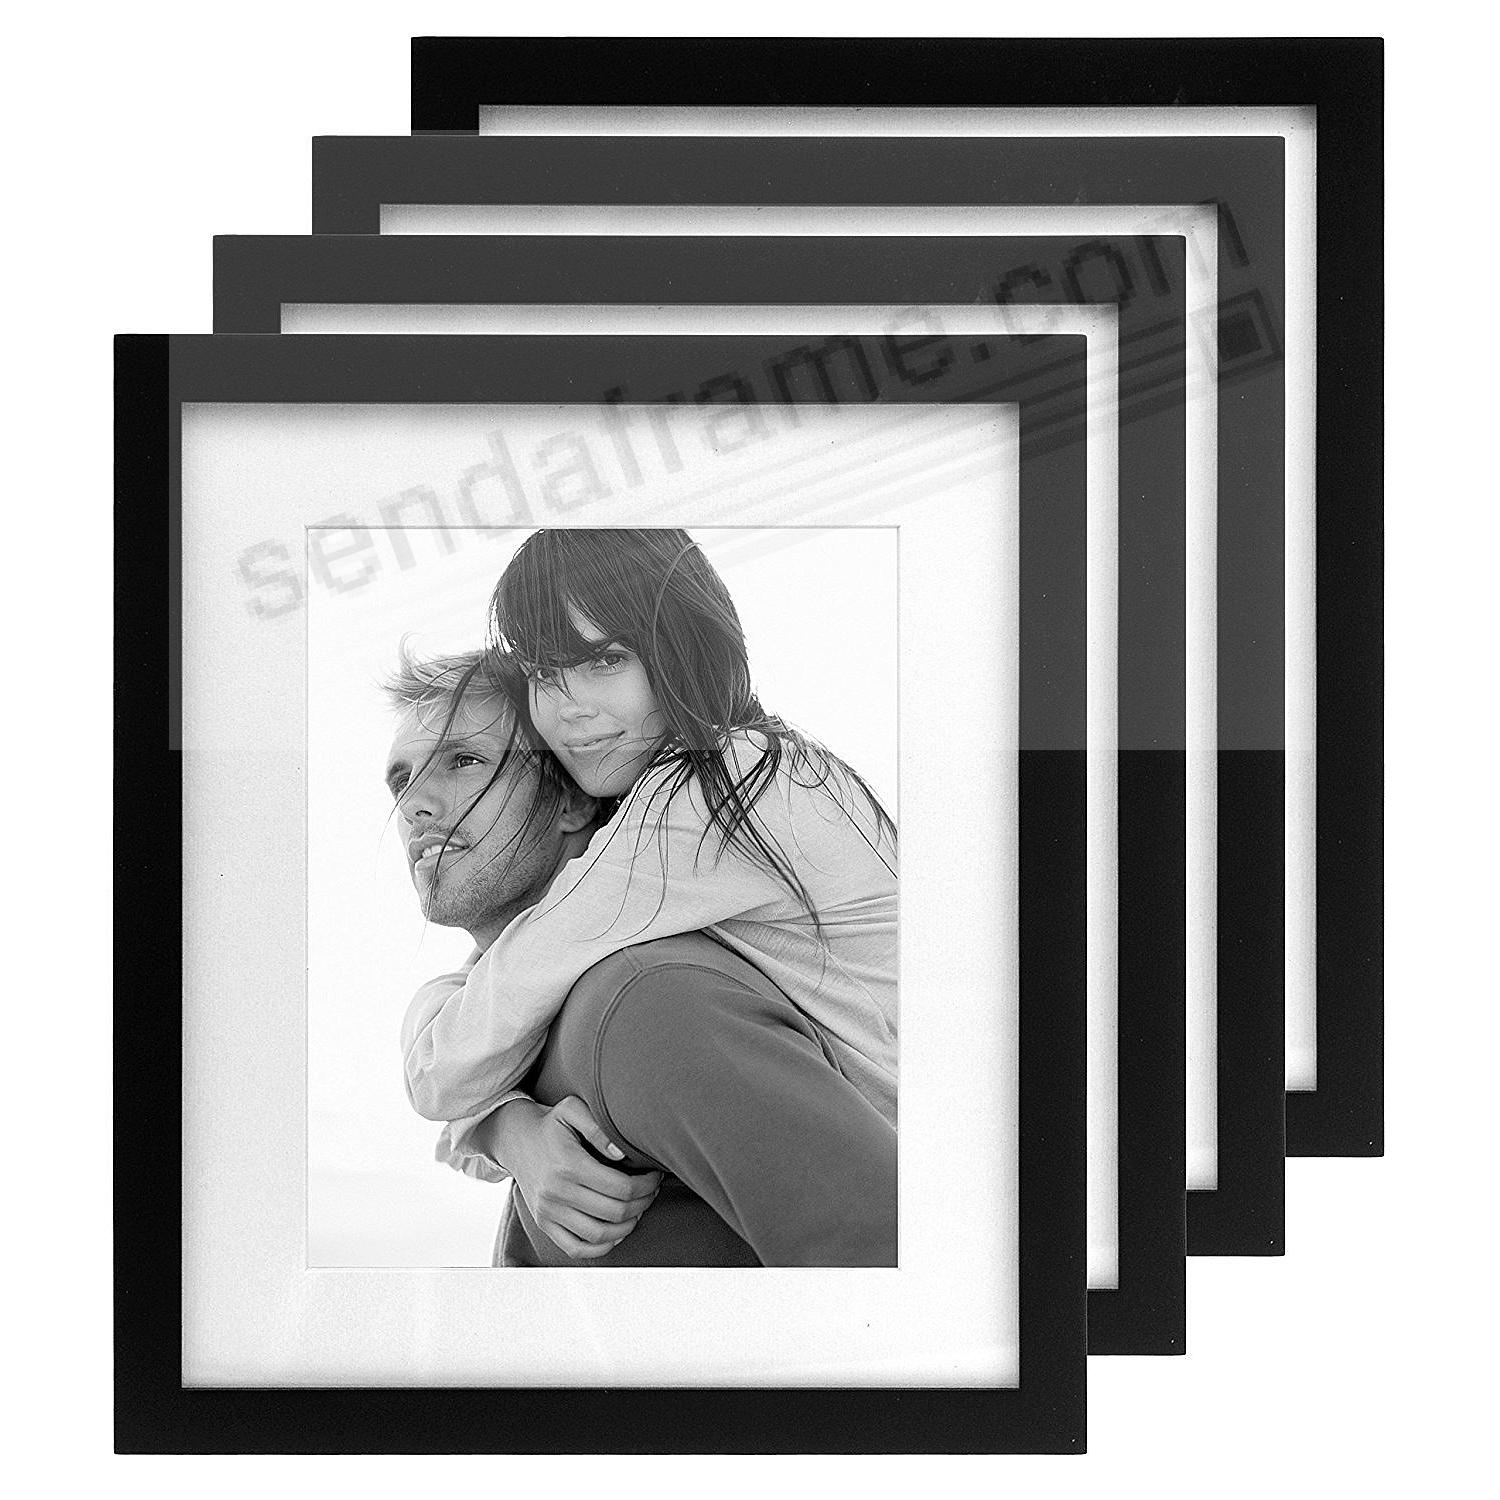 (4-Pack) LINEAR WOOD Black Frame with 11x13/8x10 coordinated mat by Malden®